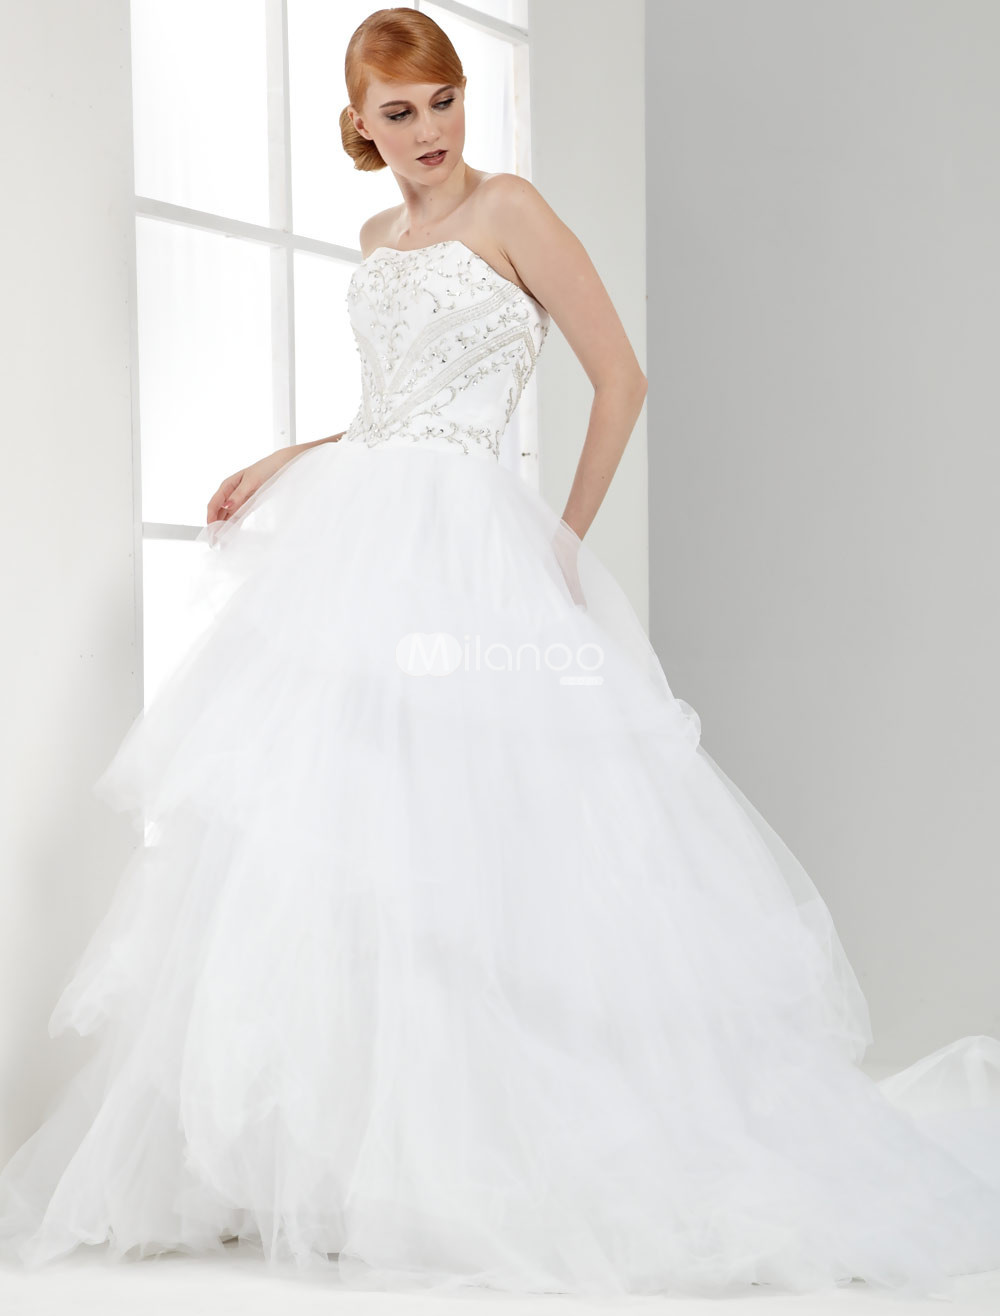 White Strapless A-line Net Bridal Gown :  aline strapless white bridal gown